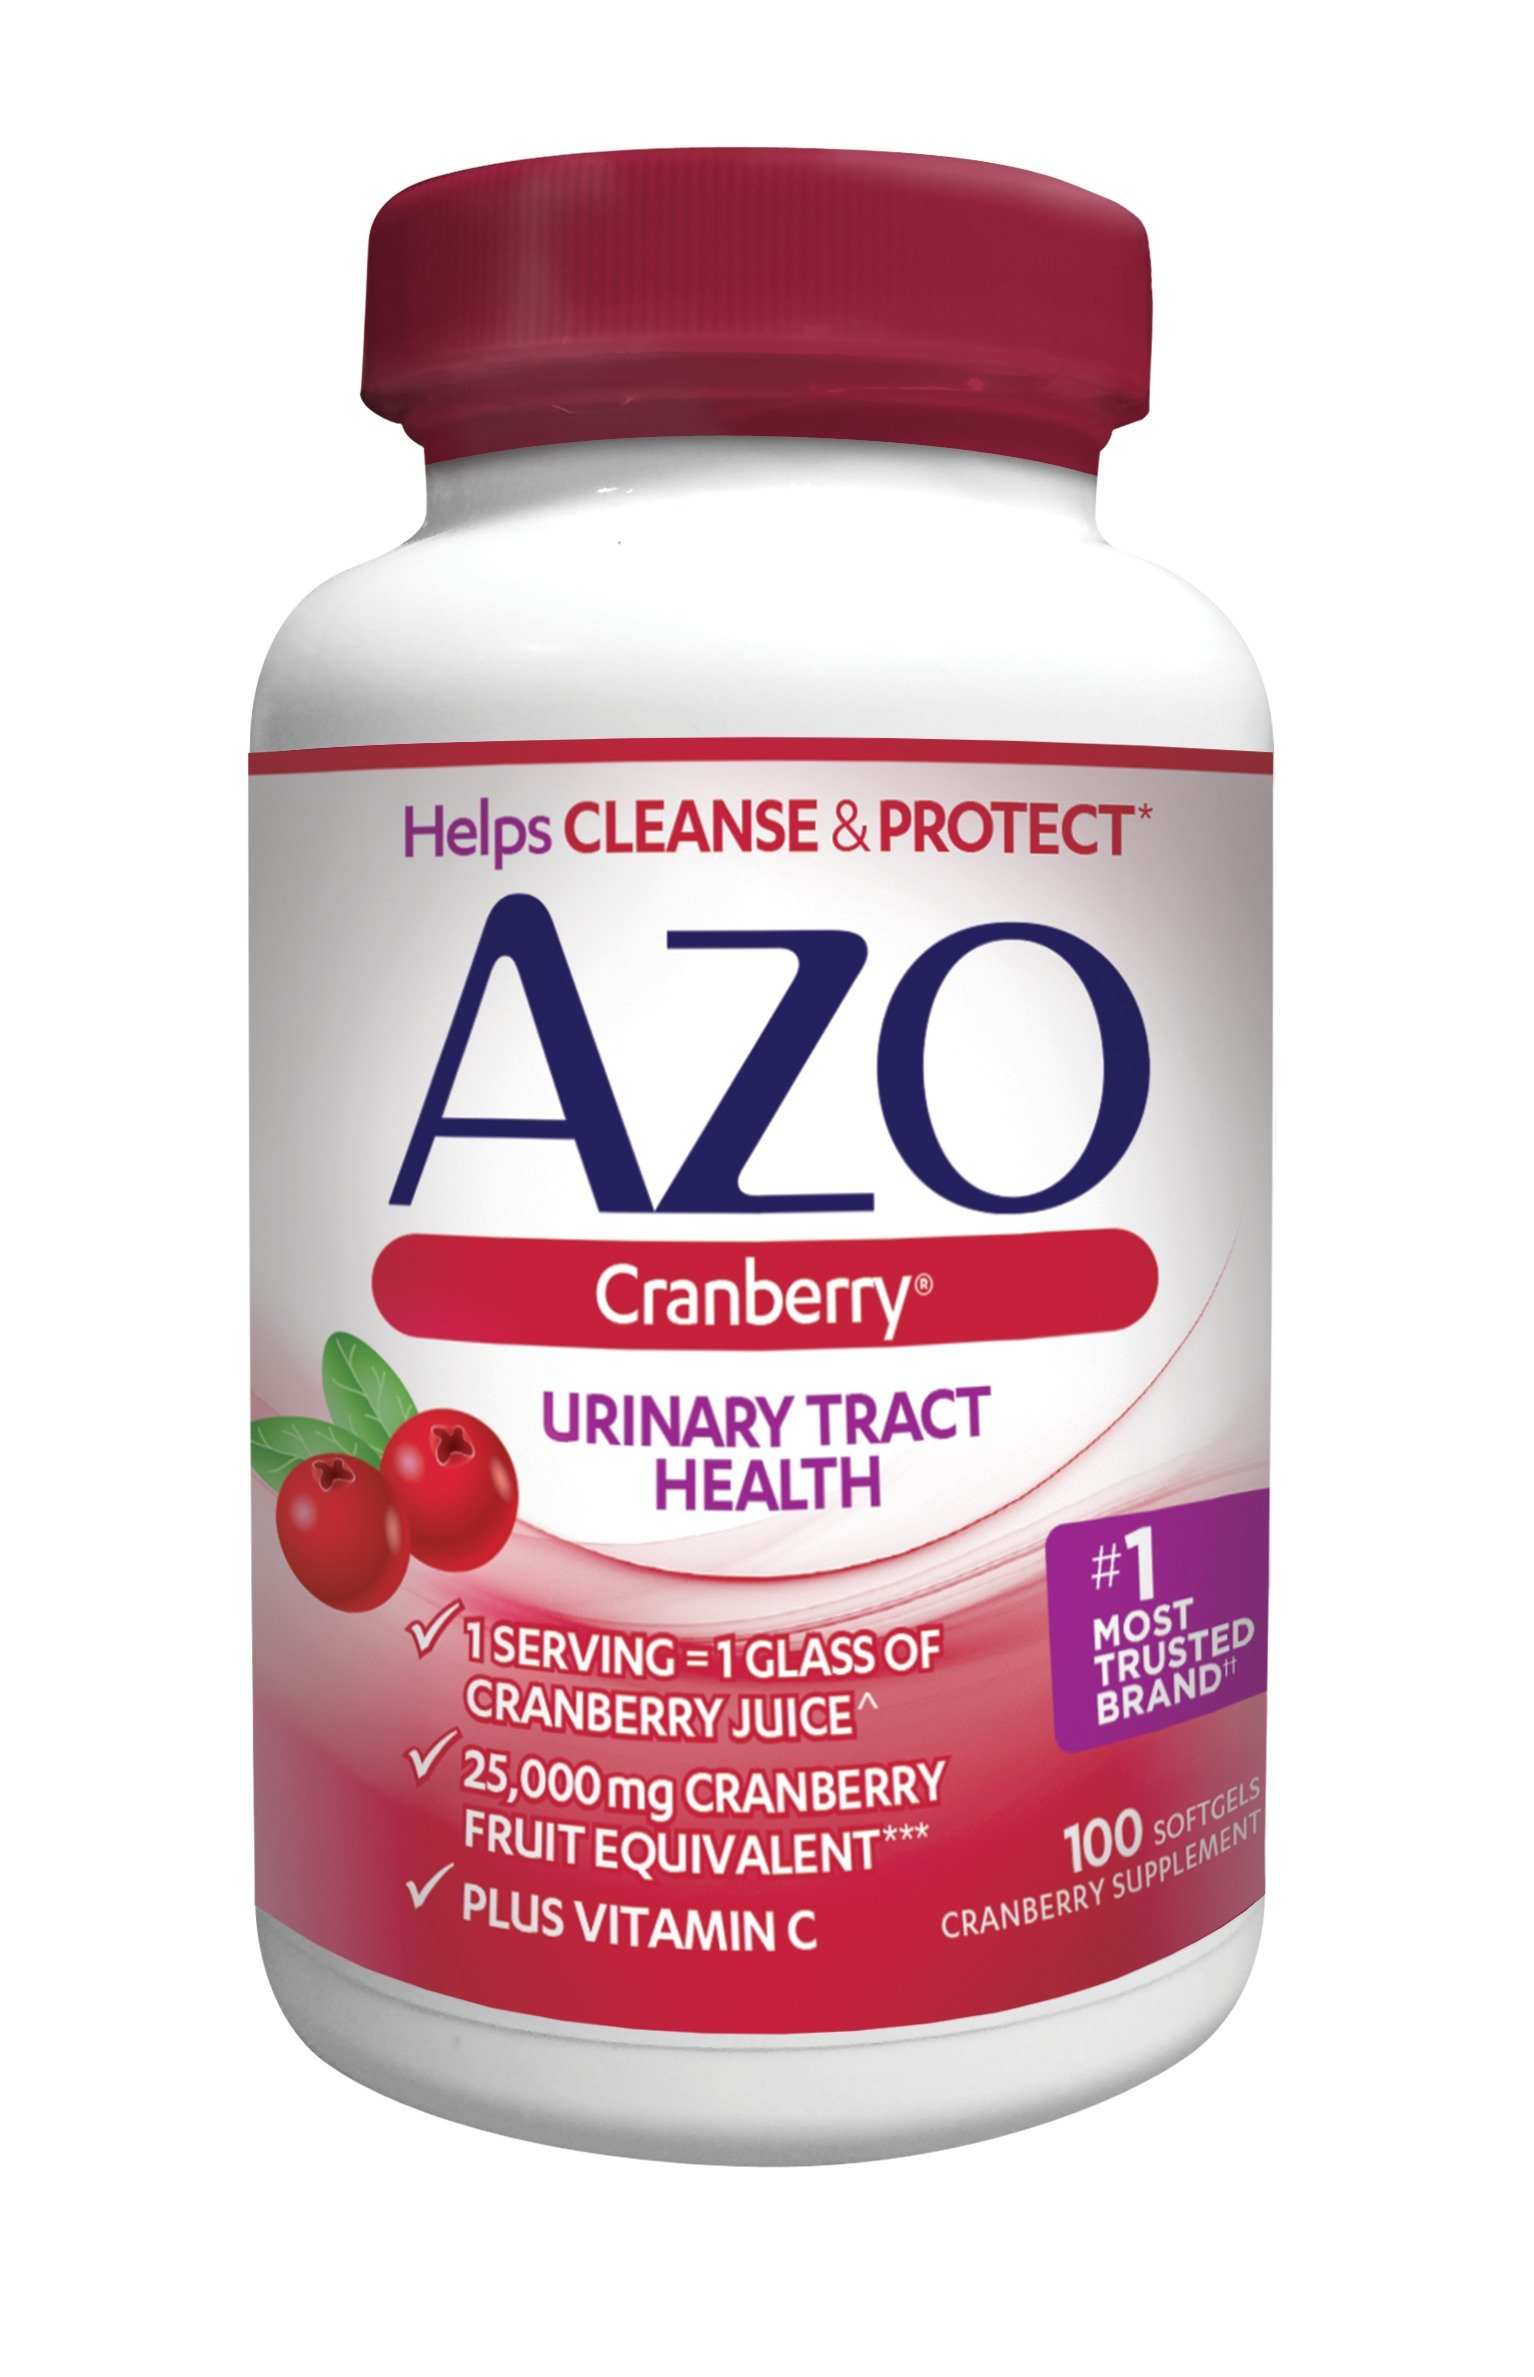 AZO Cranberry Urinary Tract Health Dietary Supplement | 1 Serving = 1 Glass of Cranberry Juice| Helps Cleanse + Protect the Urinary Tract | Sugar Free | Fast Acting | 100 Softgels by AZO